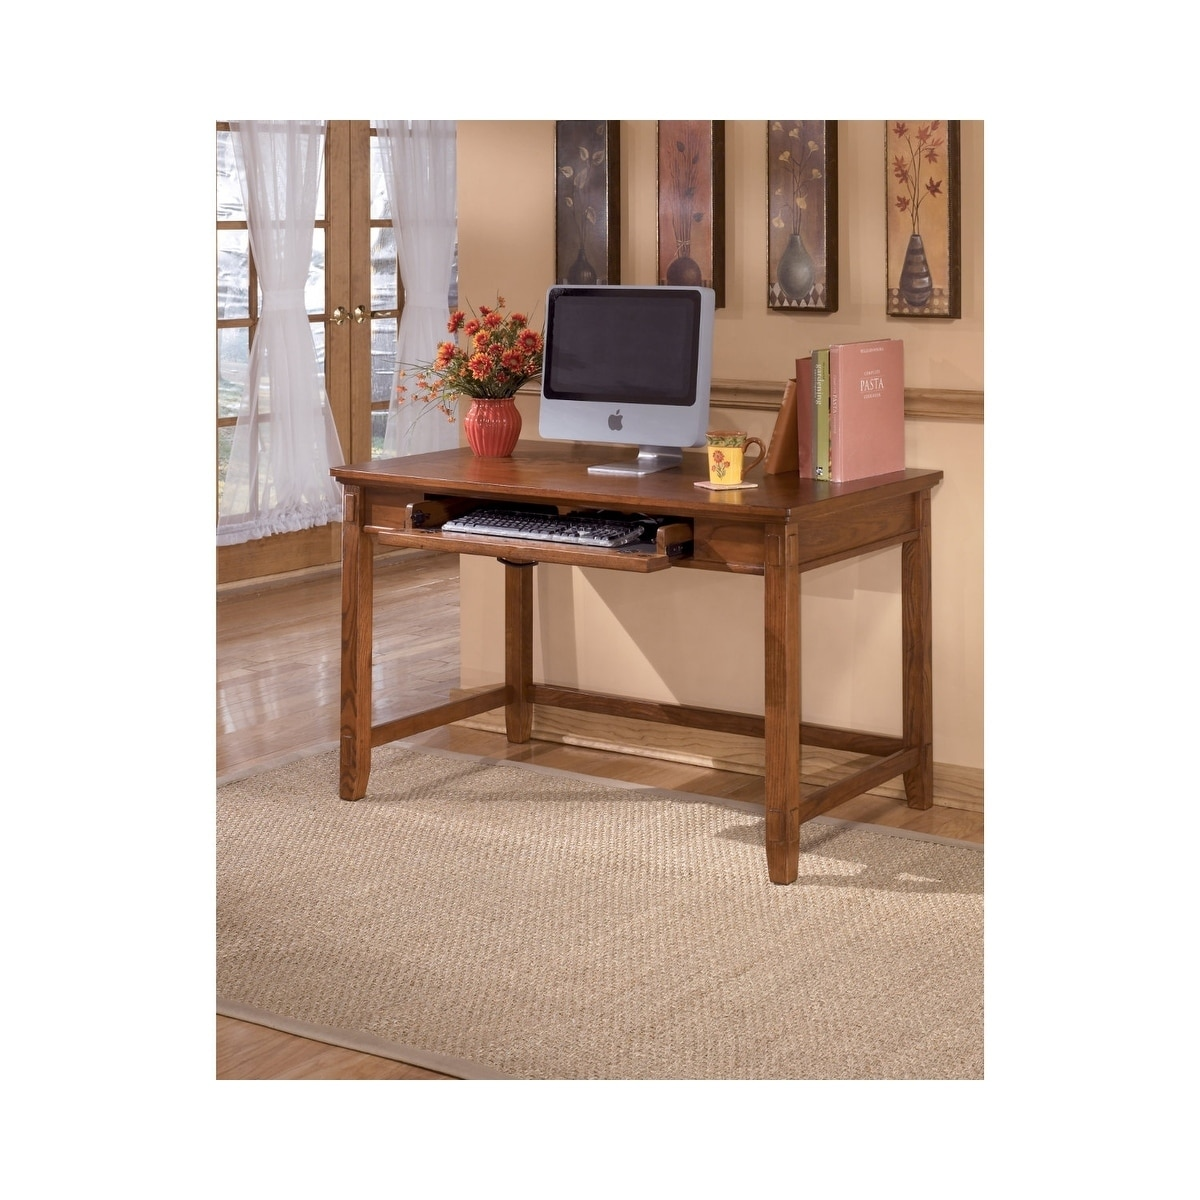 Signature Design By Ashley Cross Island Medium Brown Home Office Small Leg  Desk   Free Shipping Today   Overstock   26658251